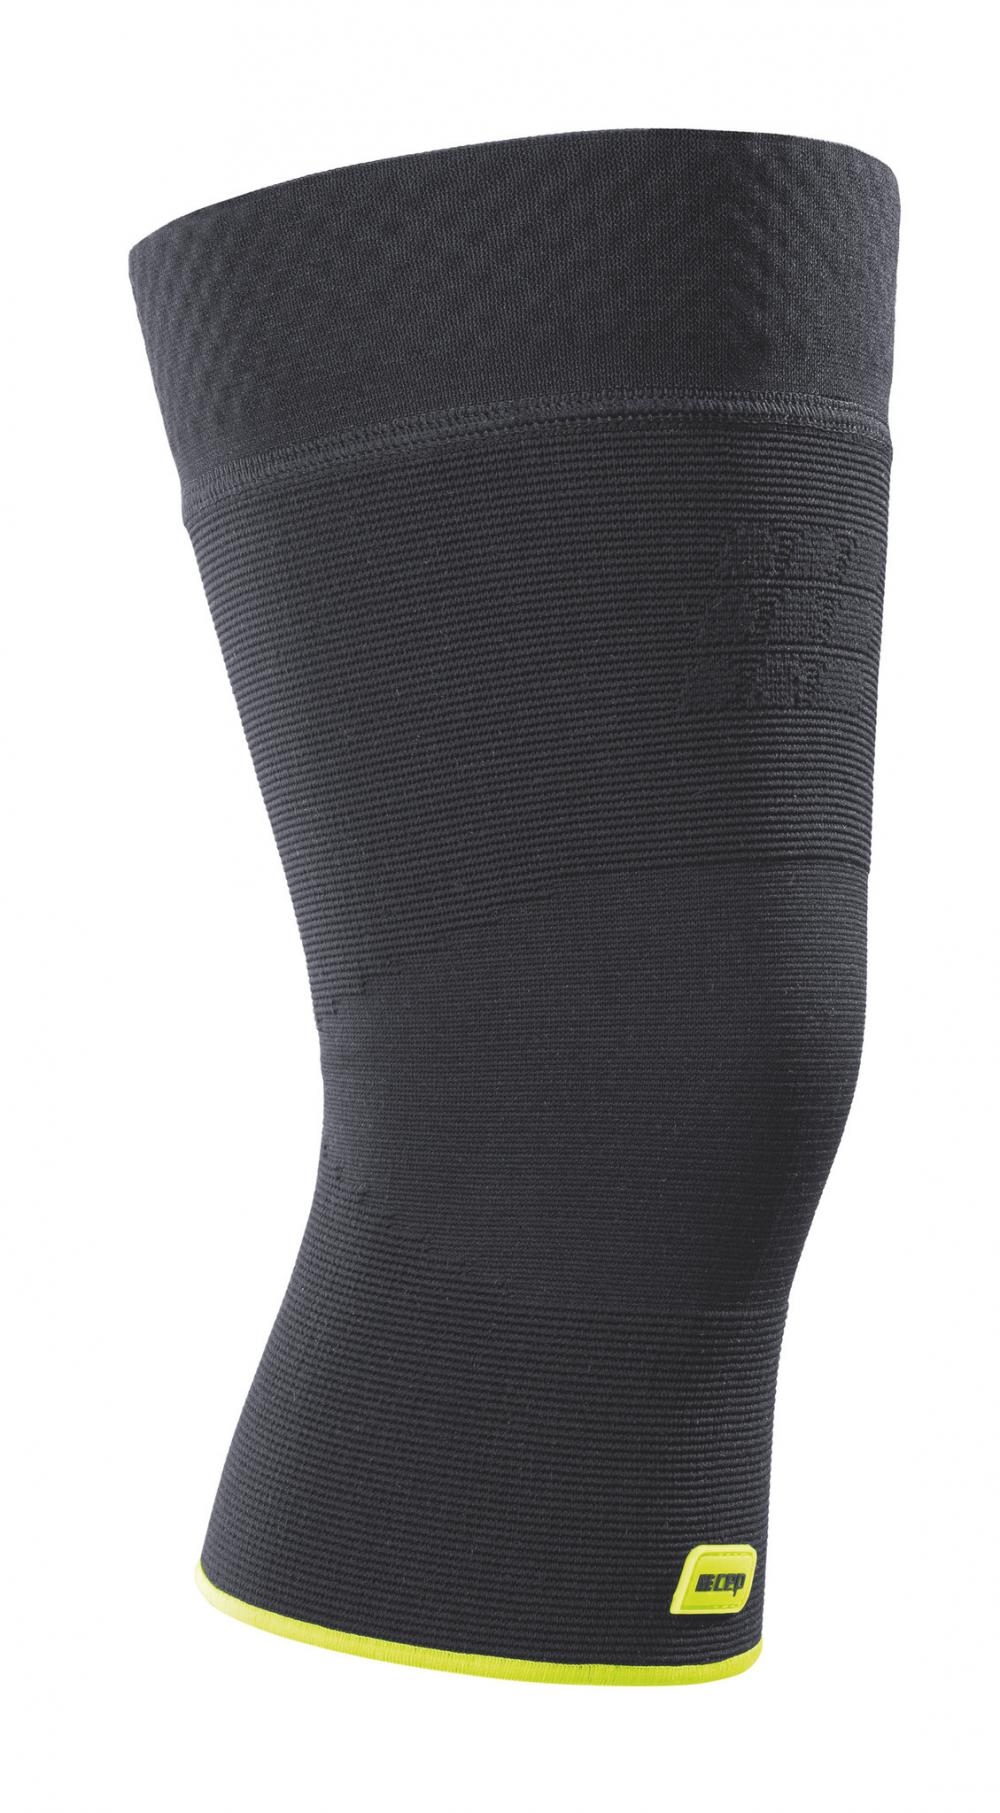 CEP Ortho + Compression Knee Sleeve, Size 1